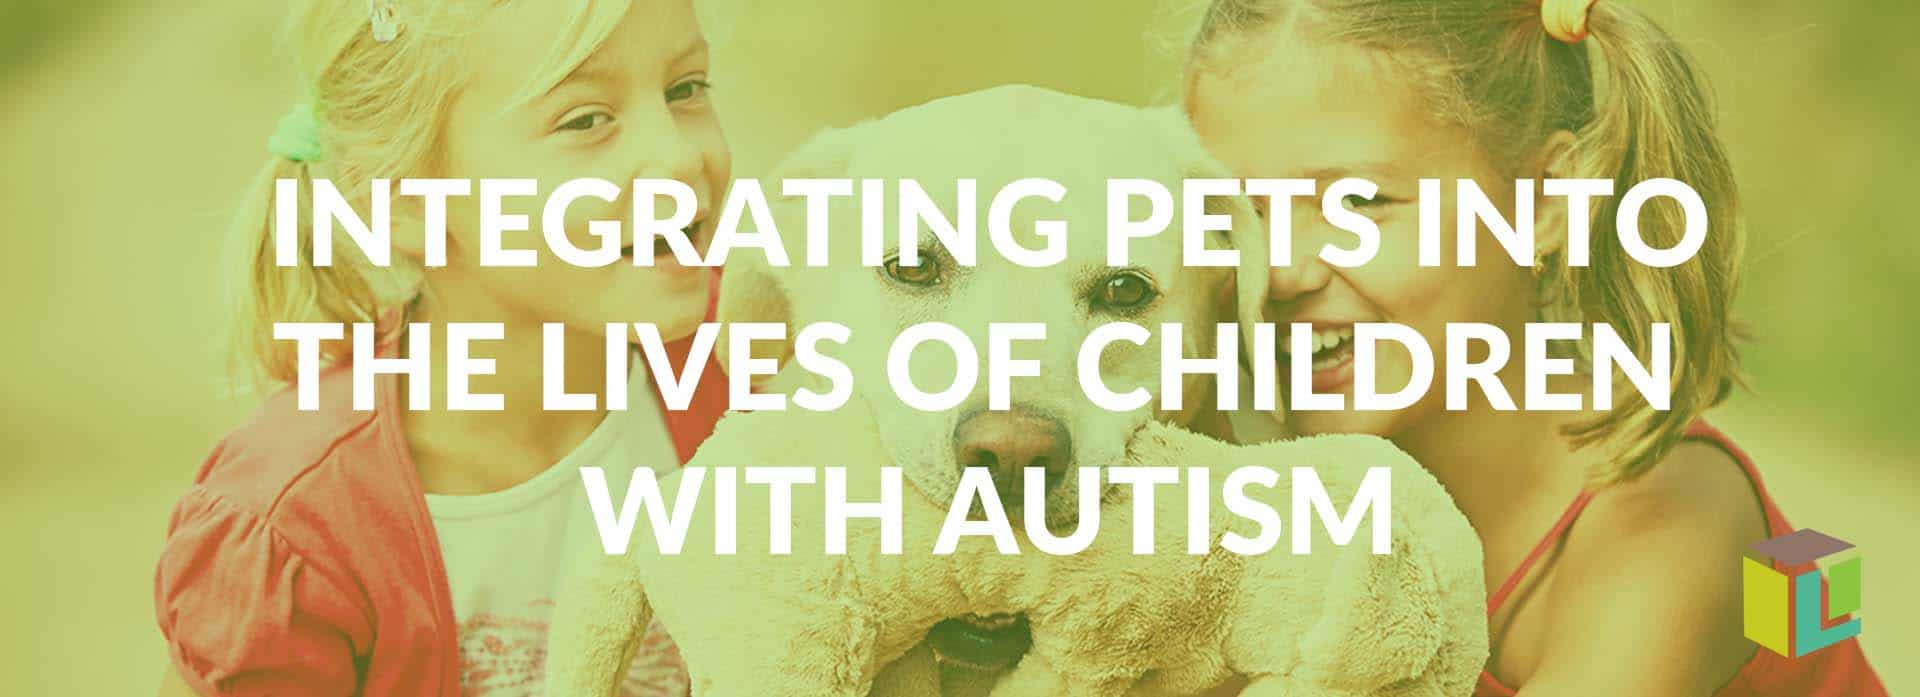 Integrating Pets Into The Lives Of Children With Autism